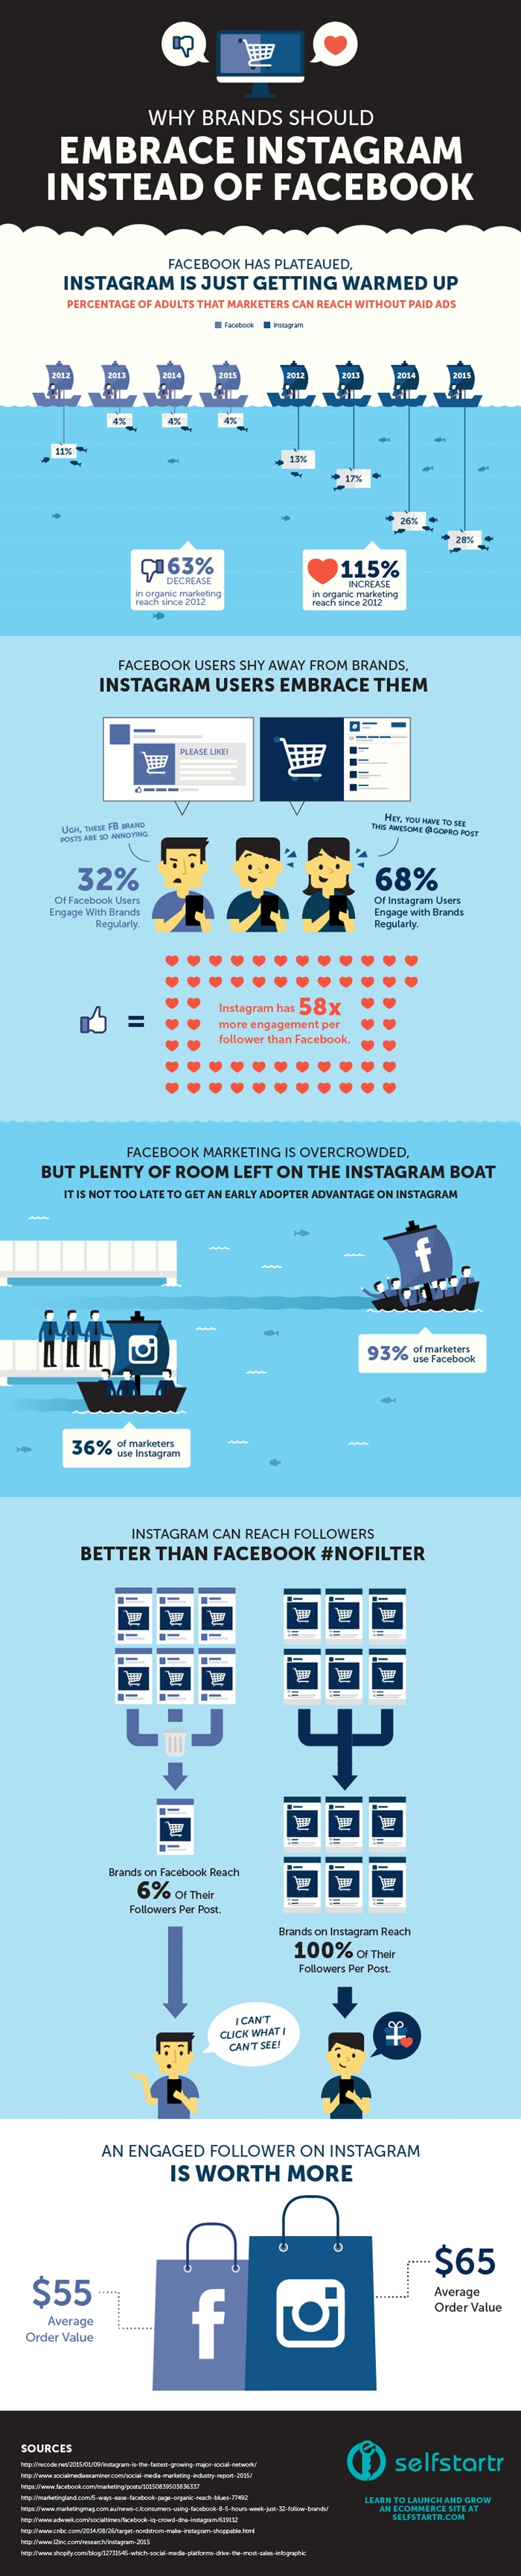 Why-Brands-Should-Embrace-Instagram-Instead-of-Facebook-INFOGRAPHIC-by-selfstartr-700